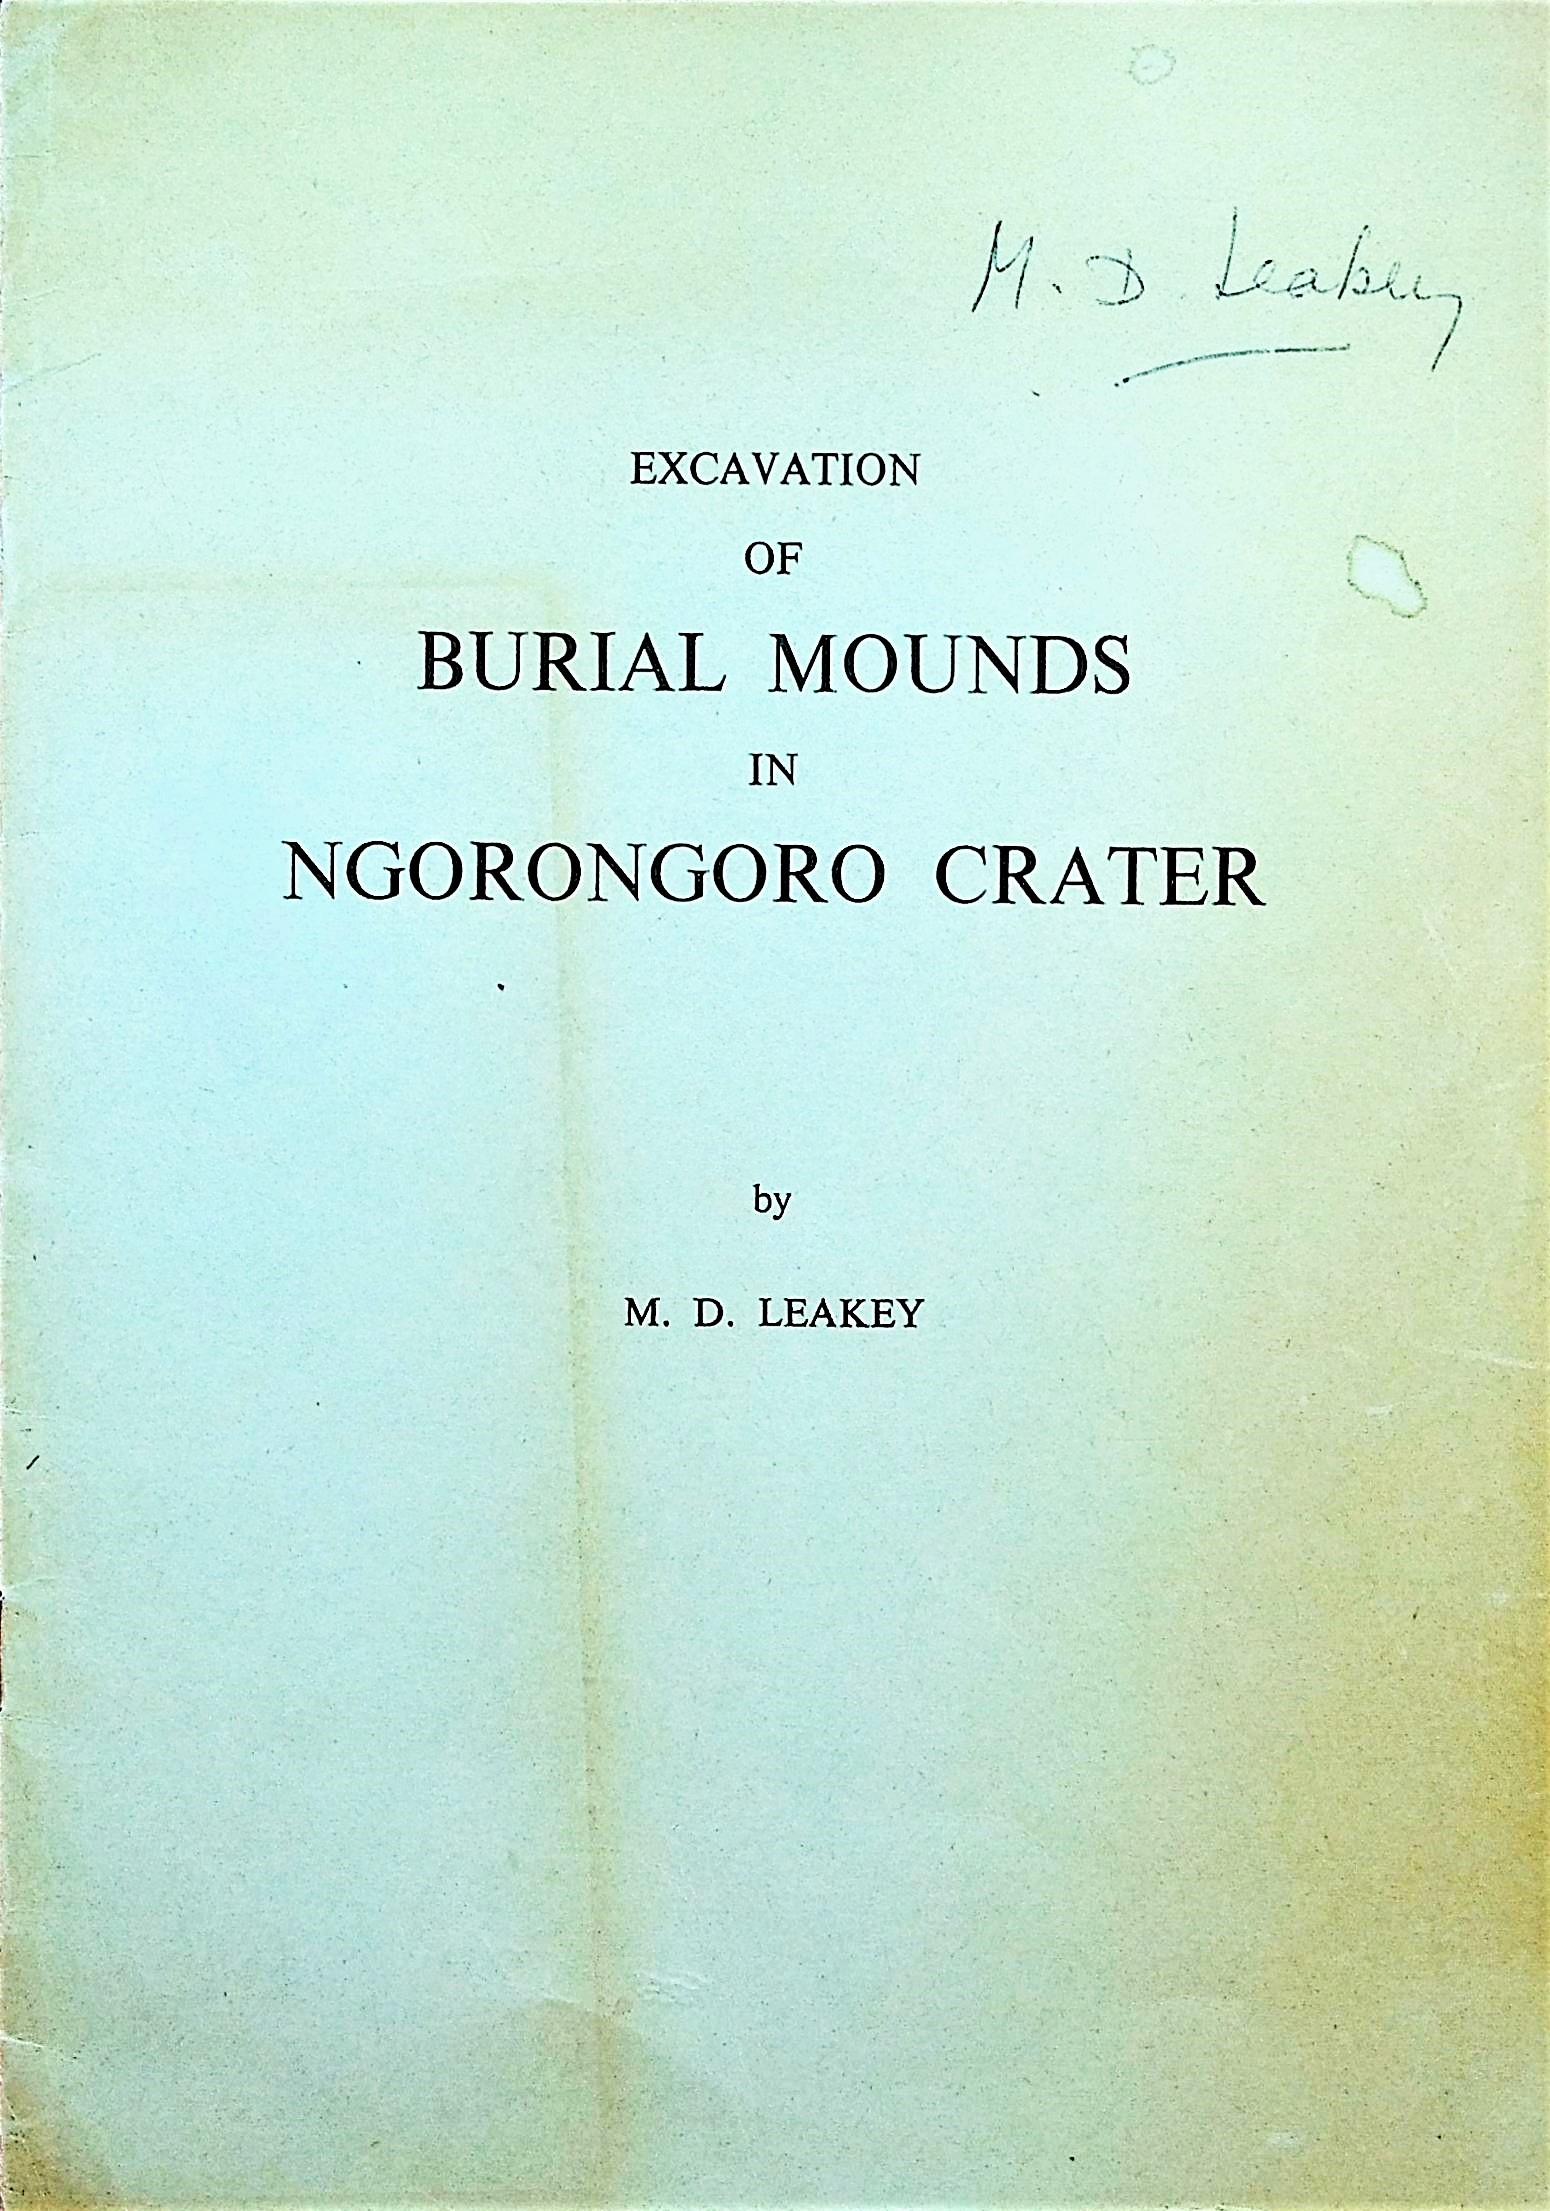 Image for Excavation of burial mounds in Ngorongoro Crater